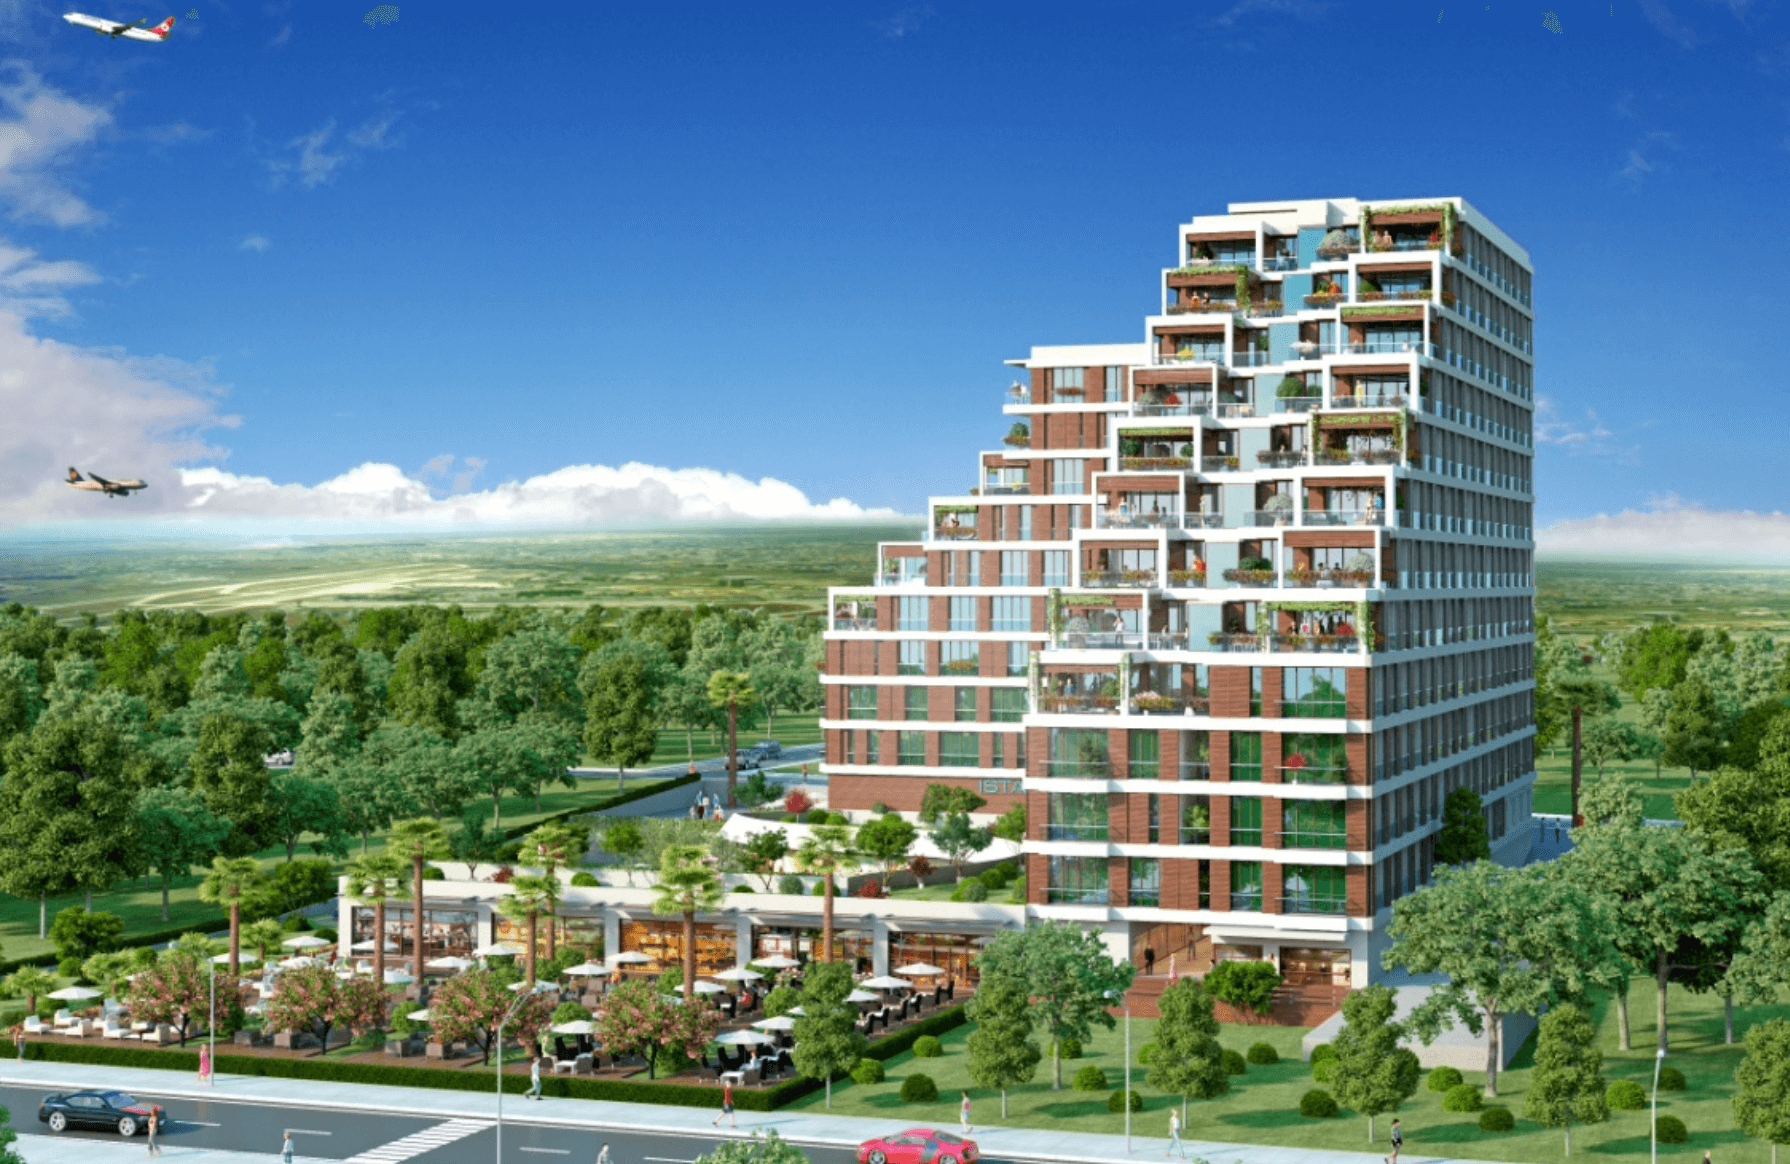 Investment Strategies for Real Estate in Turkey